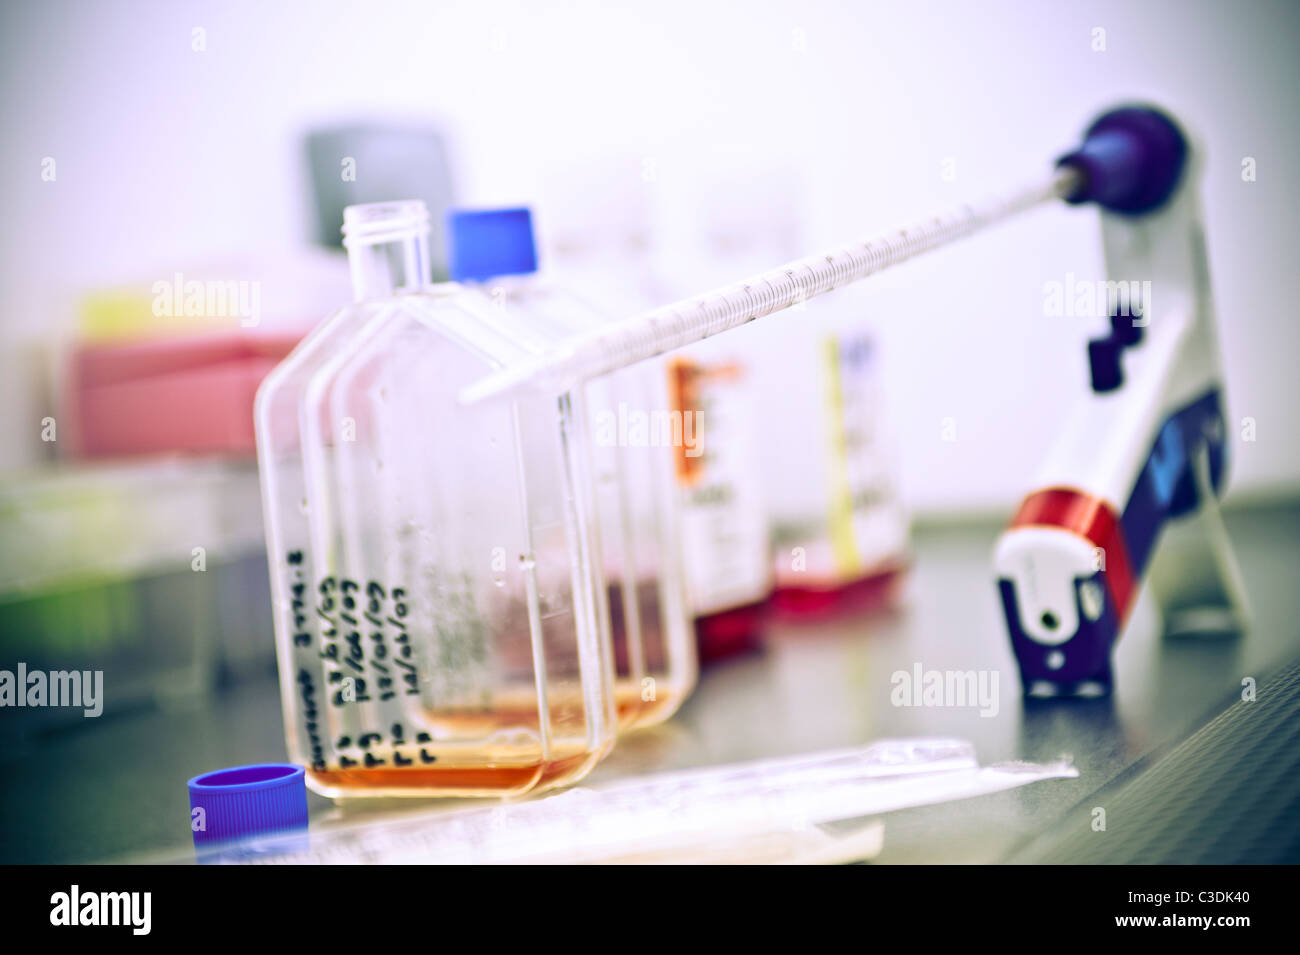 close up of scientific flasks with red and orange liquid in fume cupboard in science lab - Stock Image